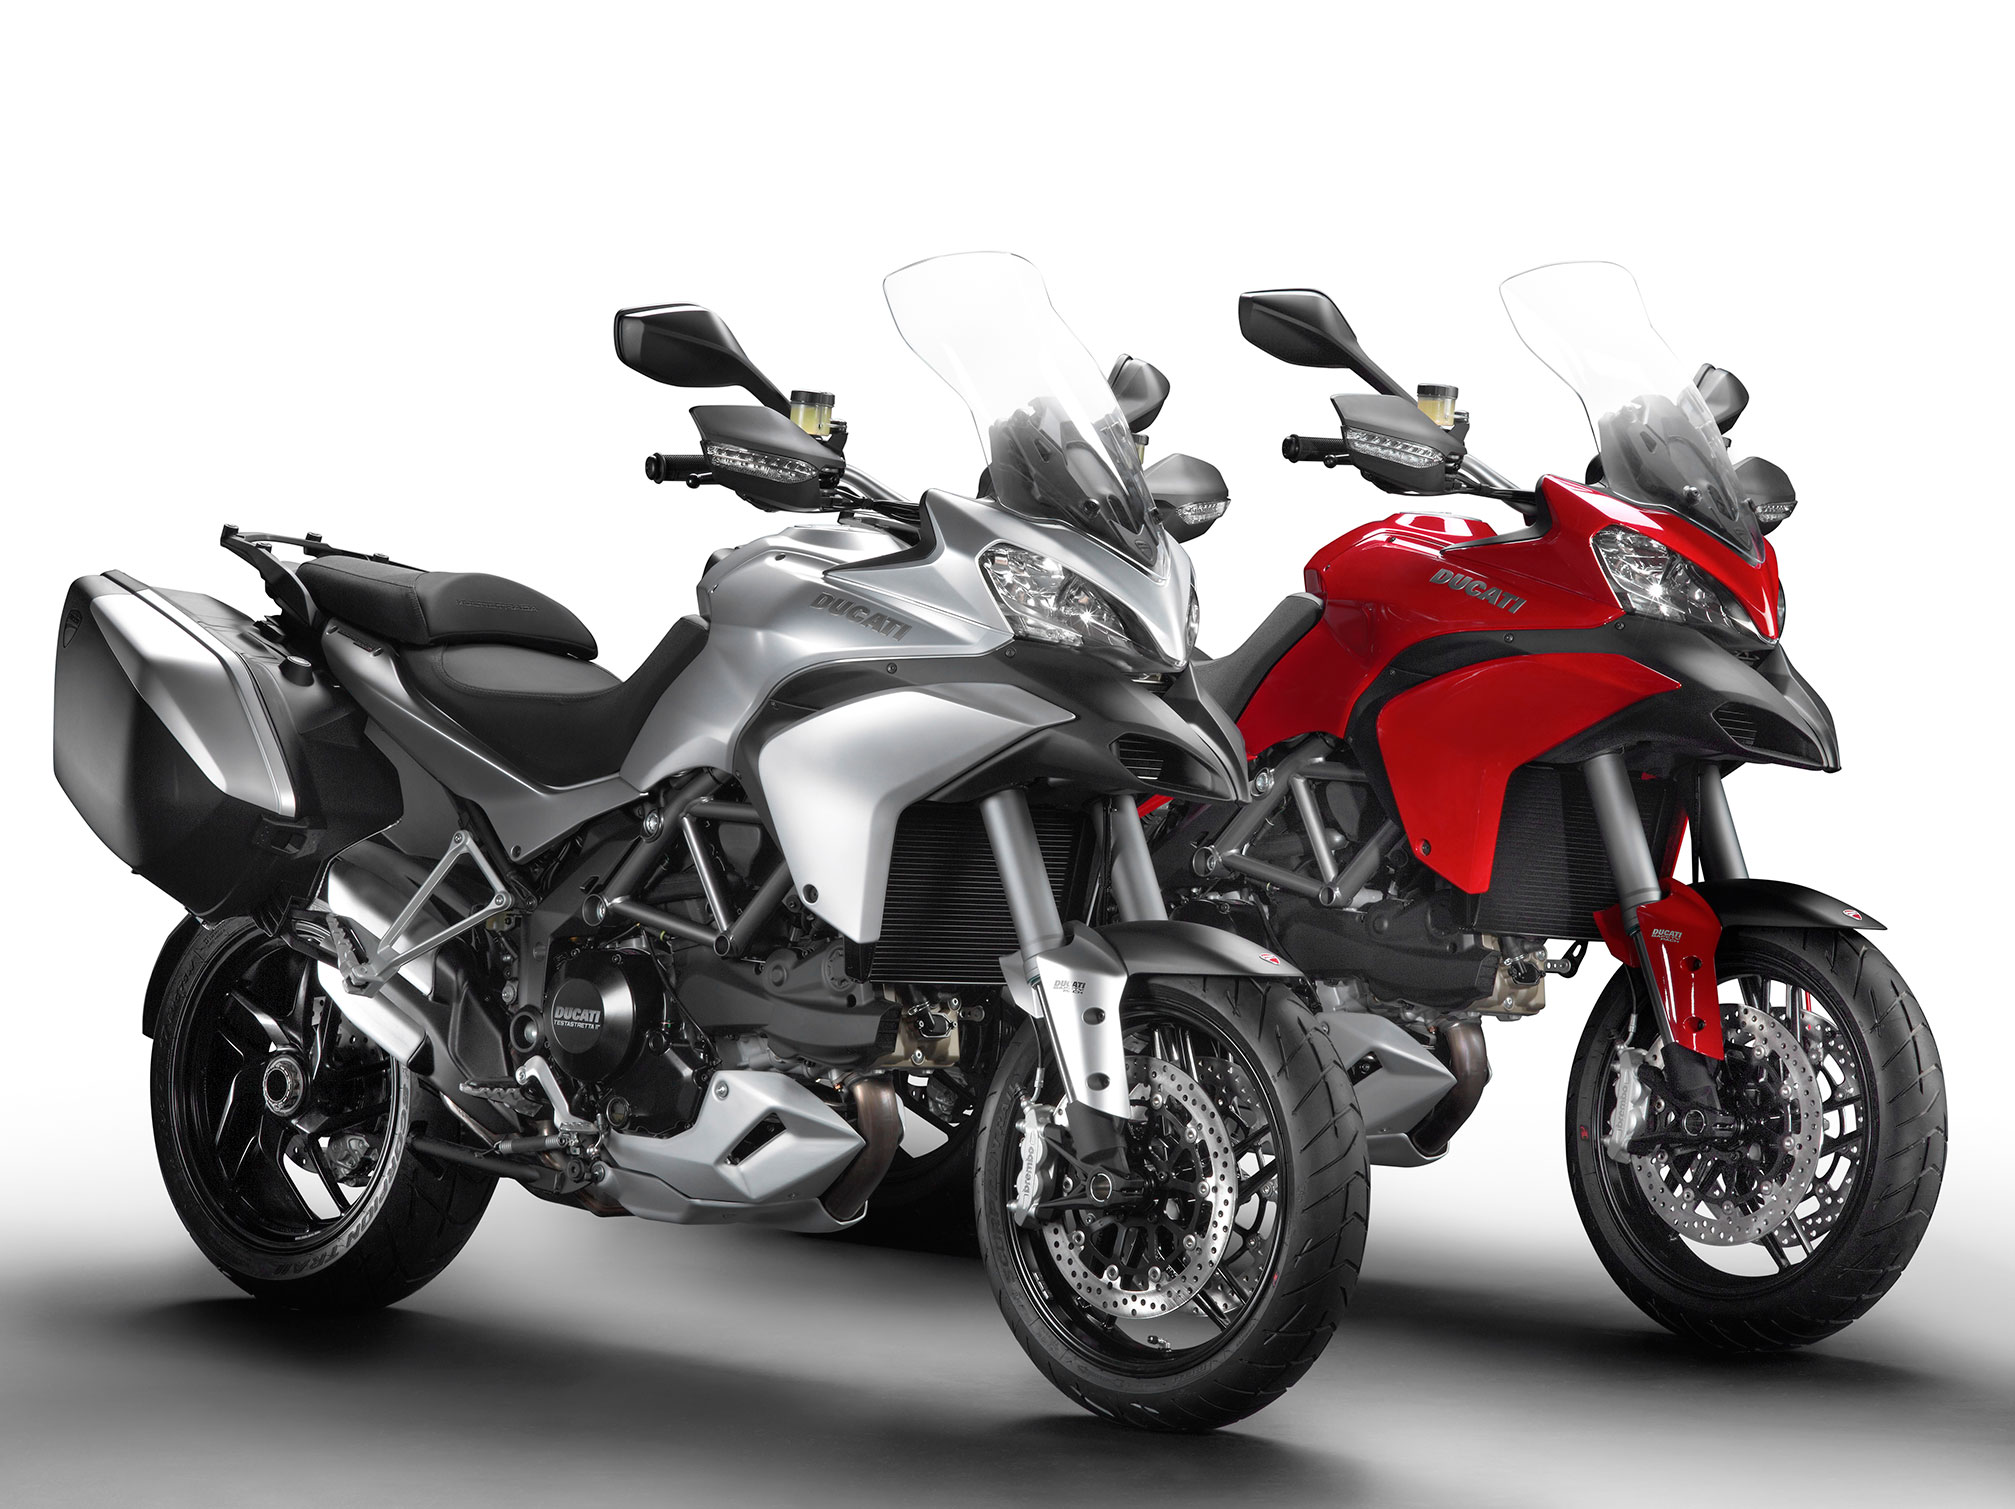 Ducati Multistrada 1200 S Sport 2011 wallpapers #12879